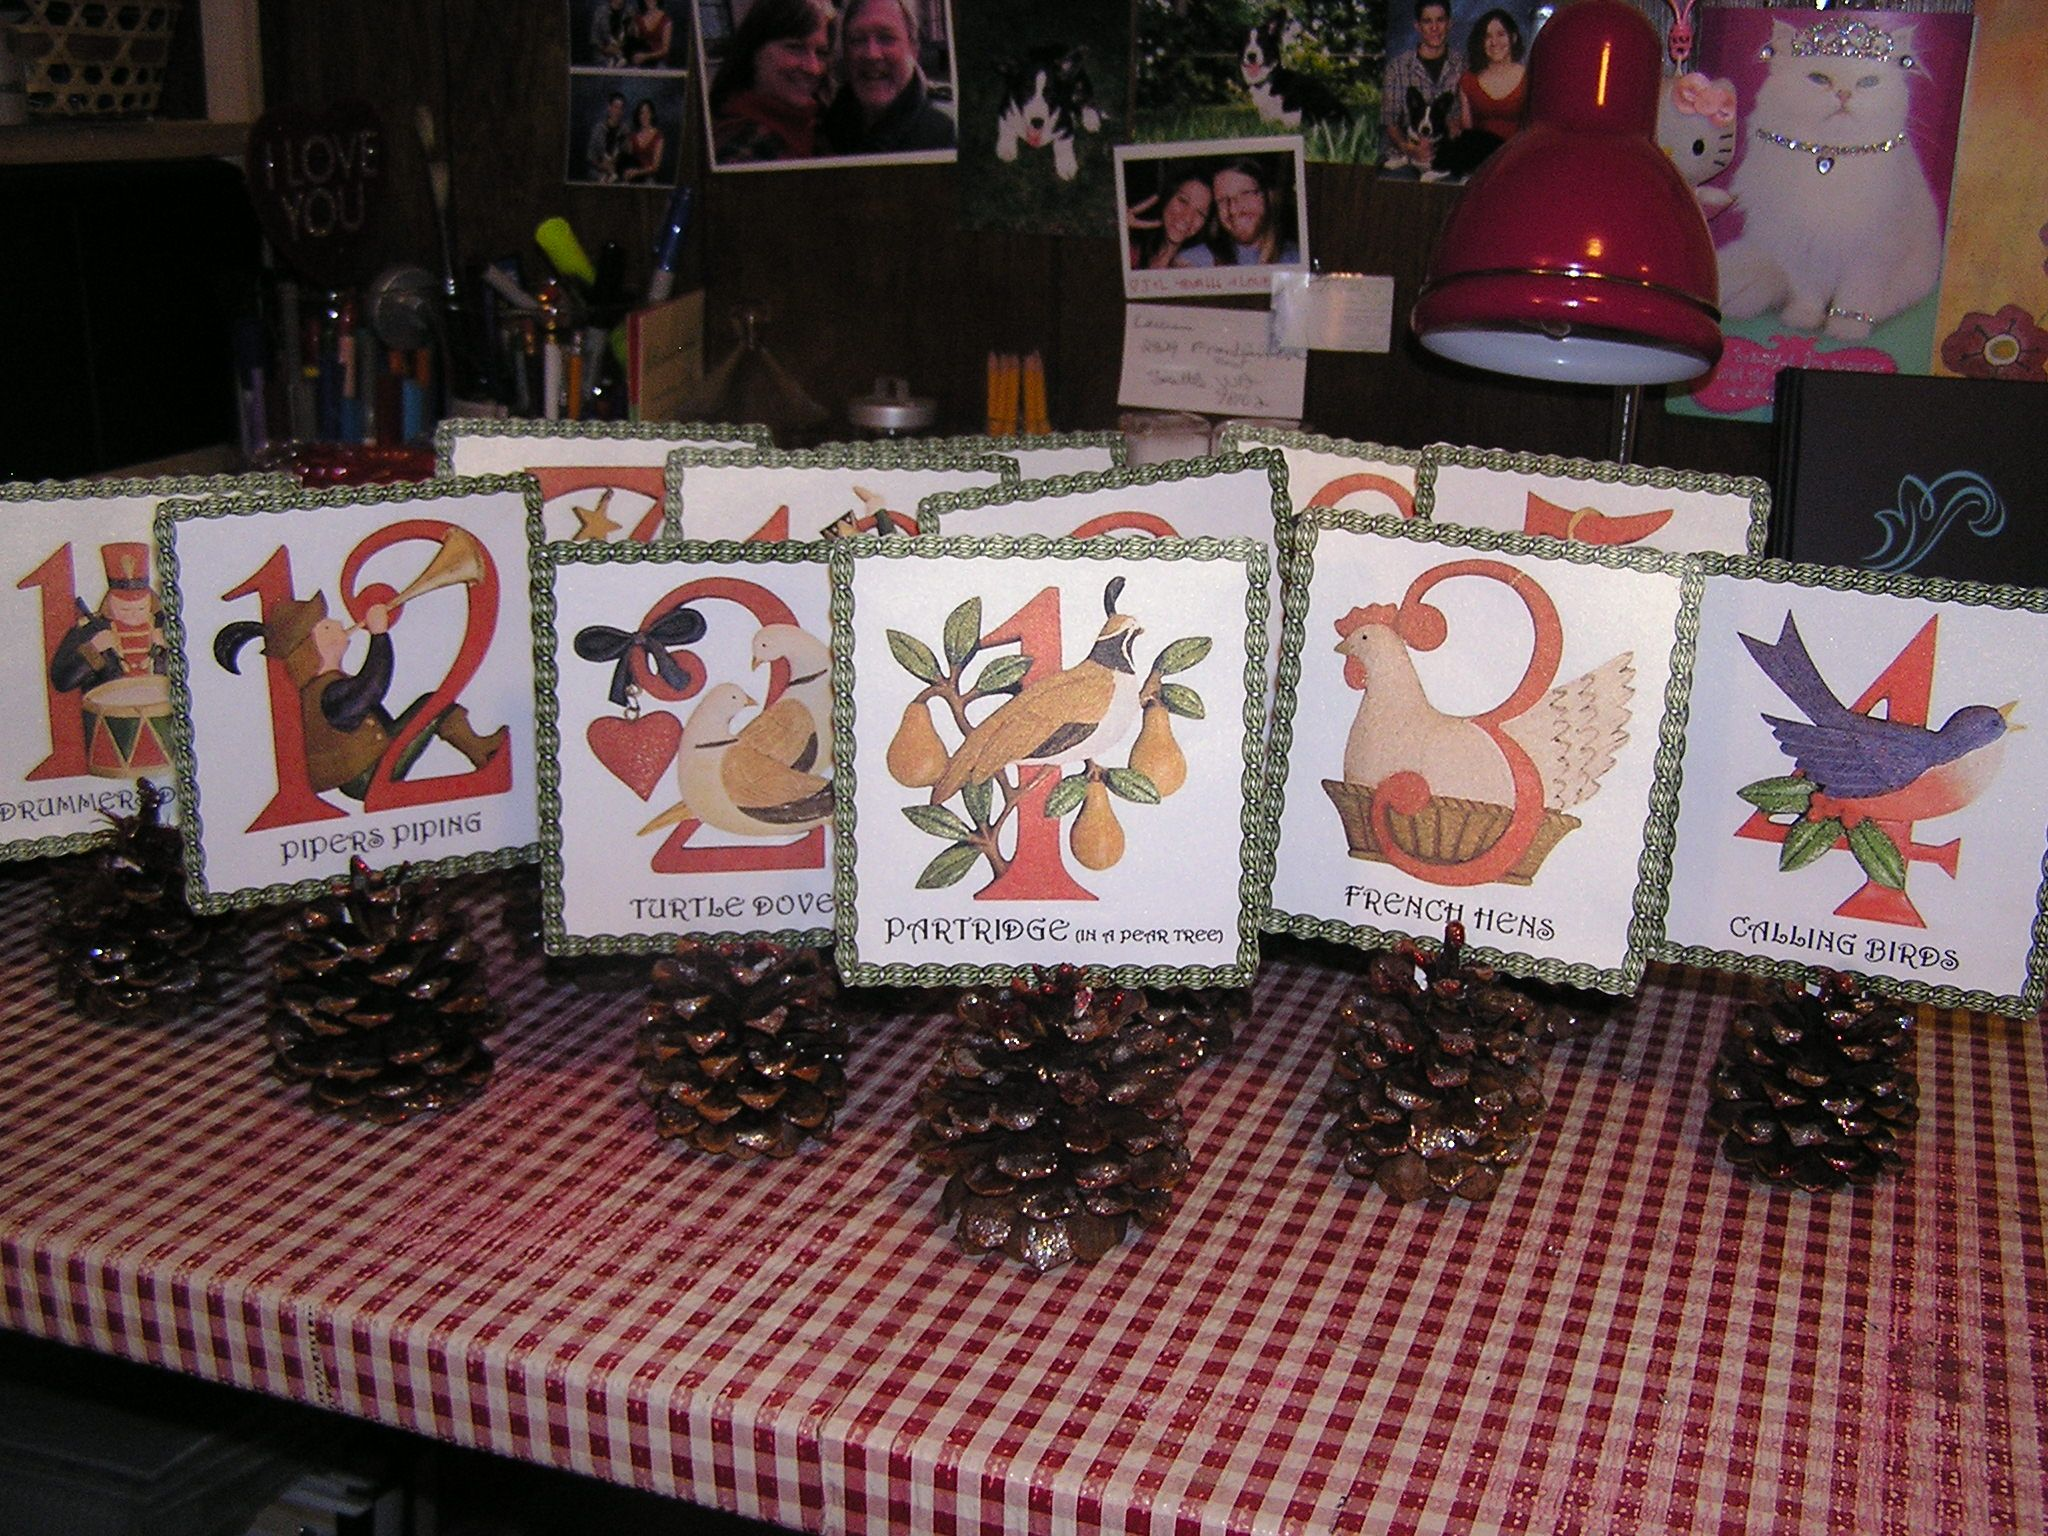 12 Days Of Christmas Table Numbers Diy Idea From Another Pin Using Slate Chalk 3 Hens Christmas Table Decorations 12 Days Of Christmas Christmas Themes